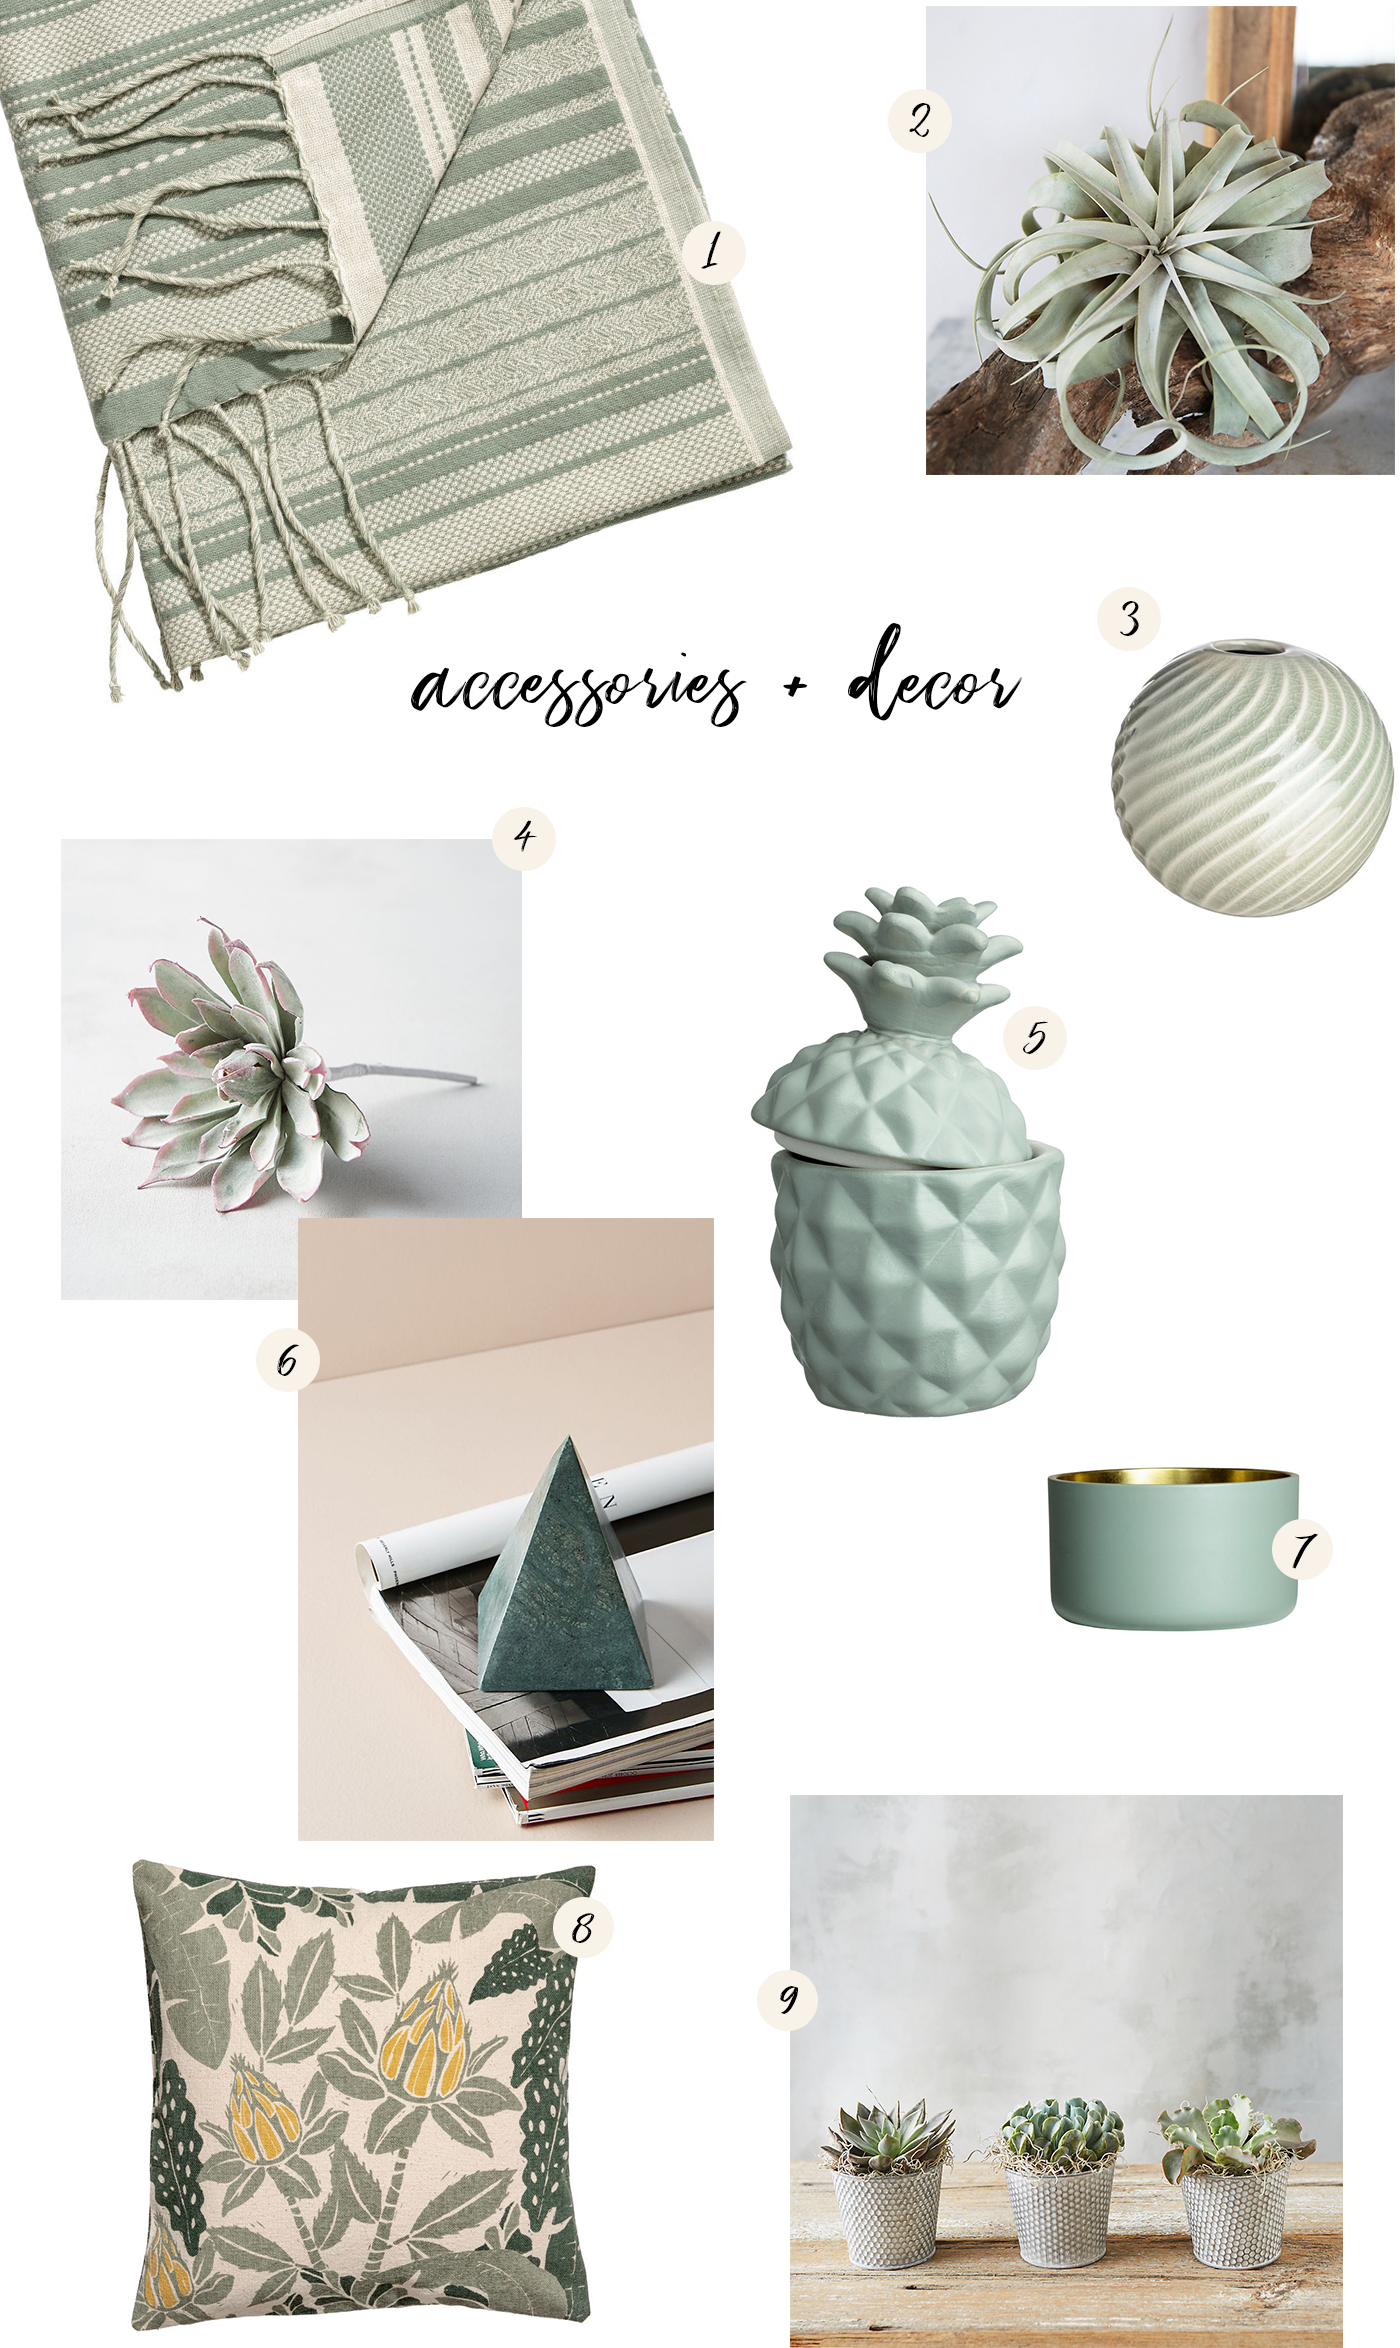 sage accessories and decor